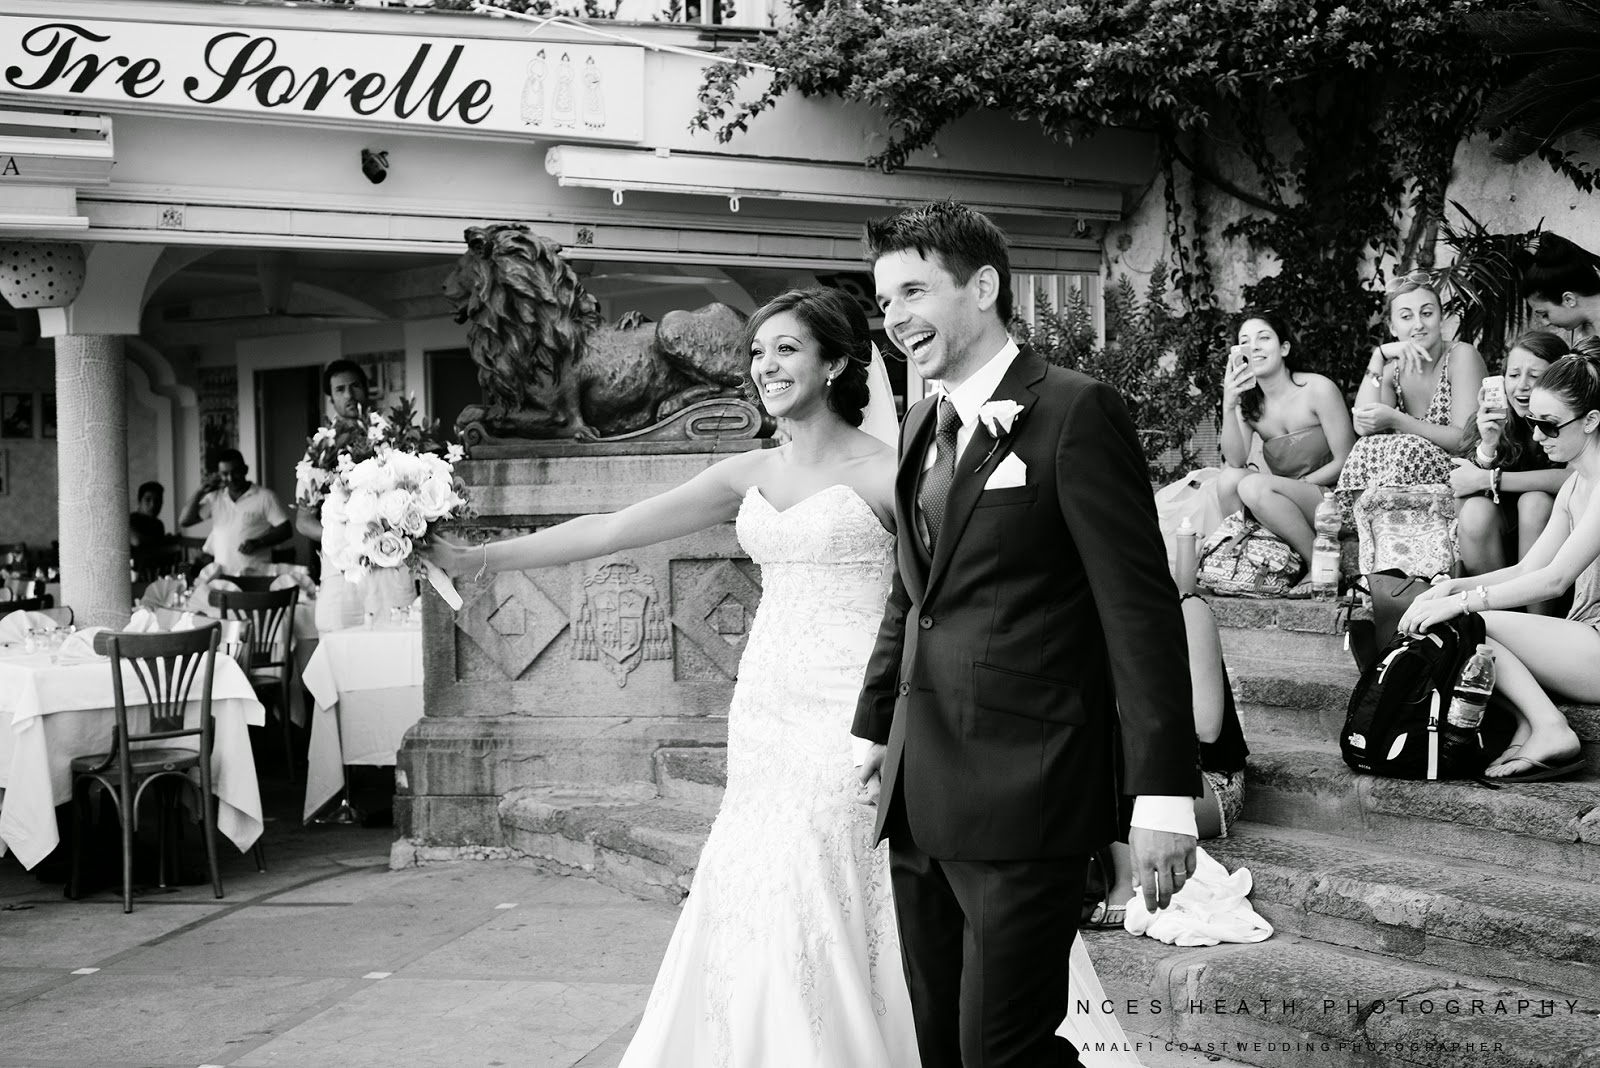 Bride and groom in Positano Italy